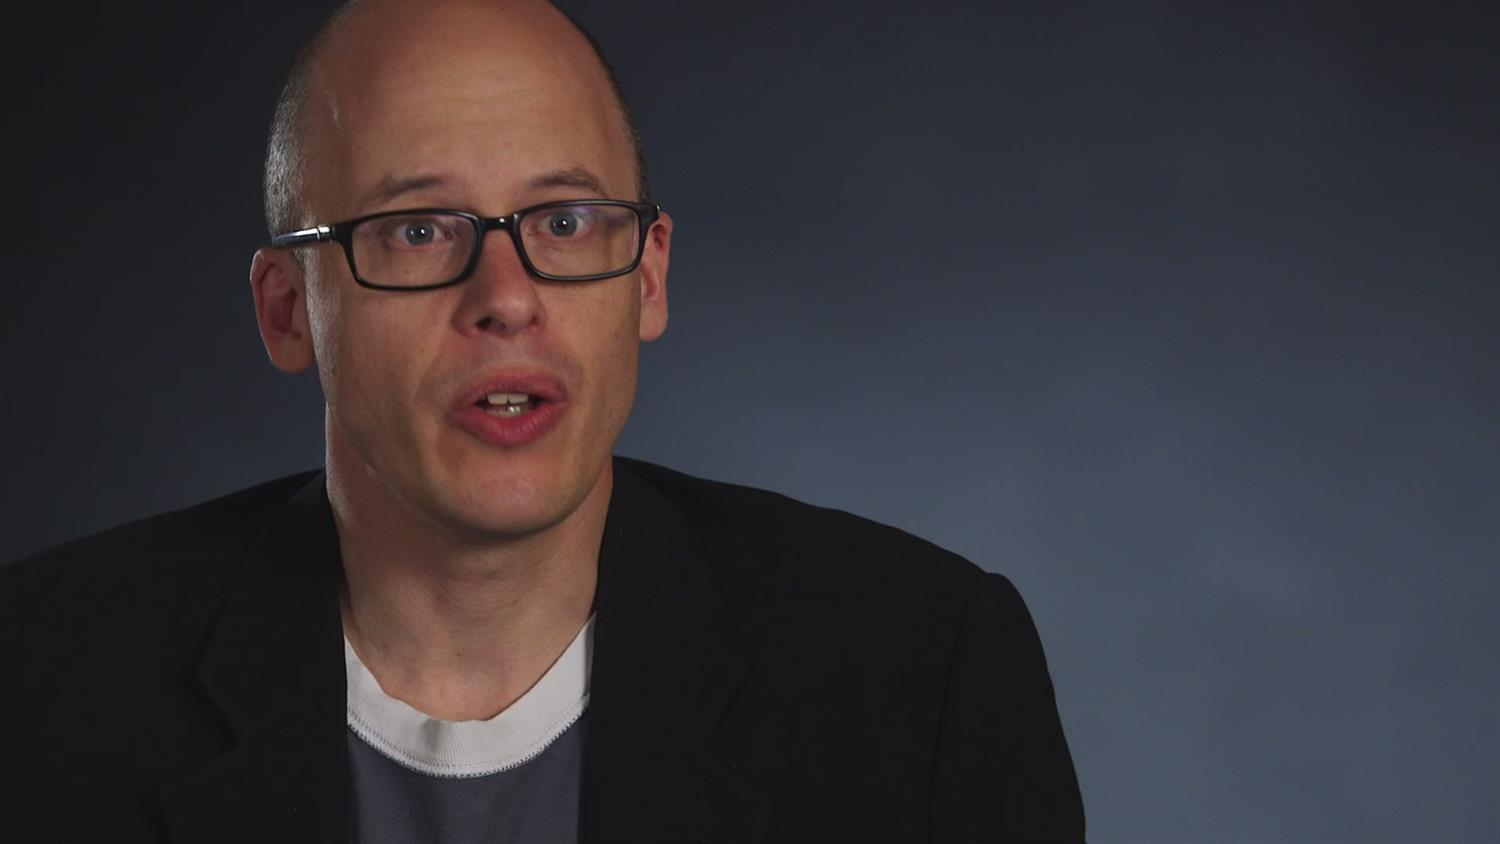 Lev Grossman on The Magicians Books